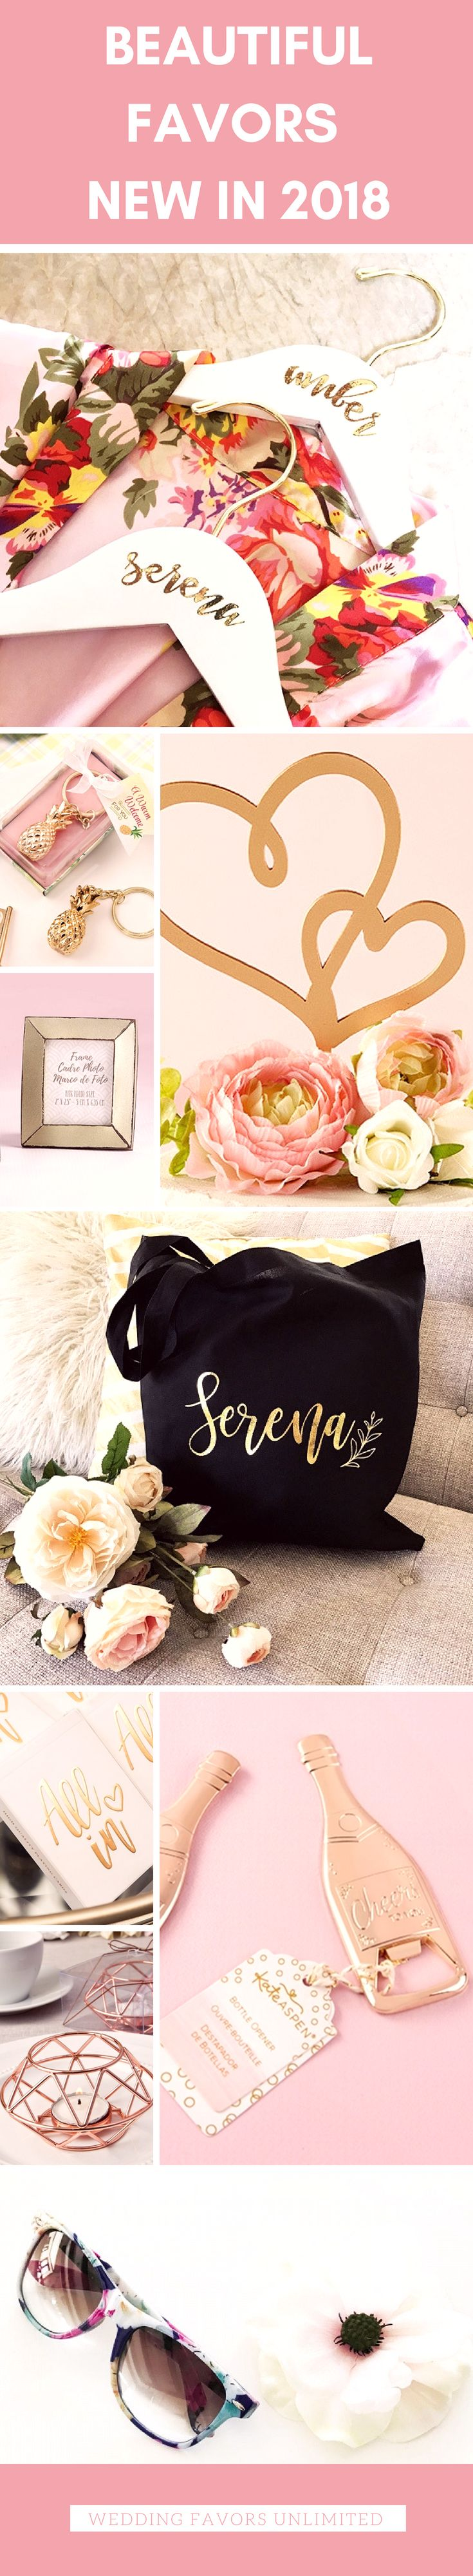 Browse beautiful wedding favors, gifts and keepsakes NEW in 2018 at Wedding Favo…